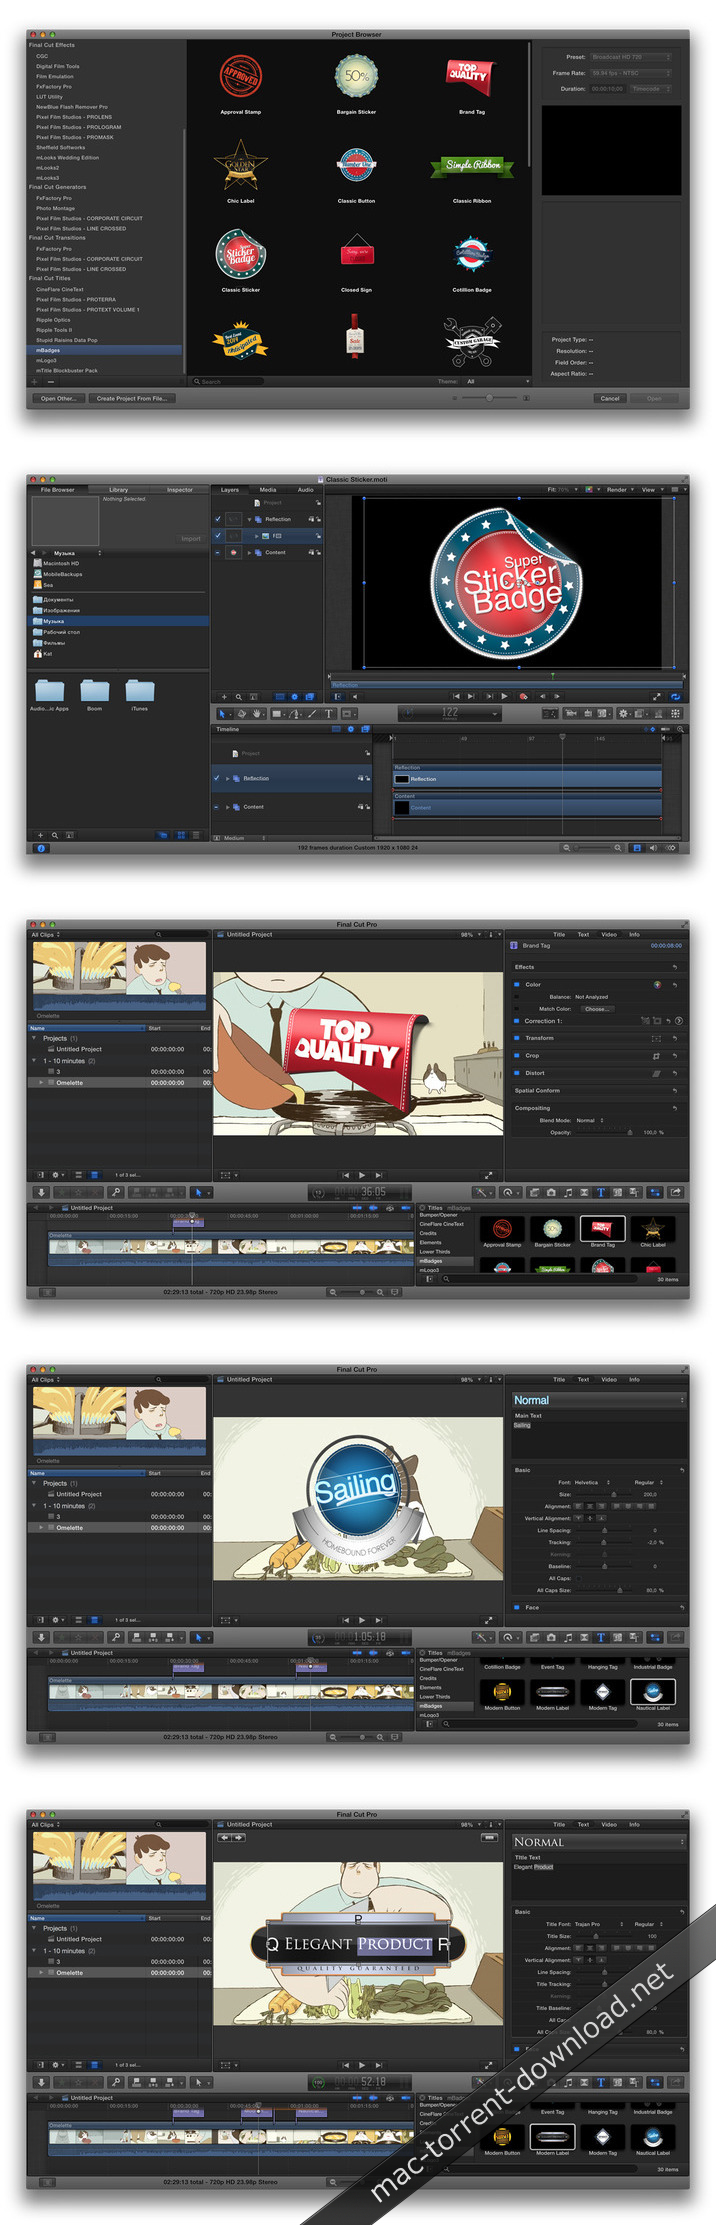 motionvfx_mbadges_30_high_quality_labels_for_motion_5_and_final_cut_pro_x